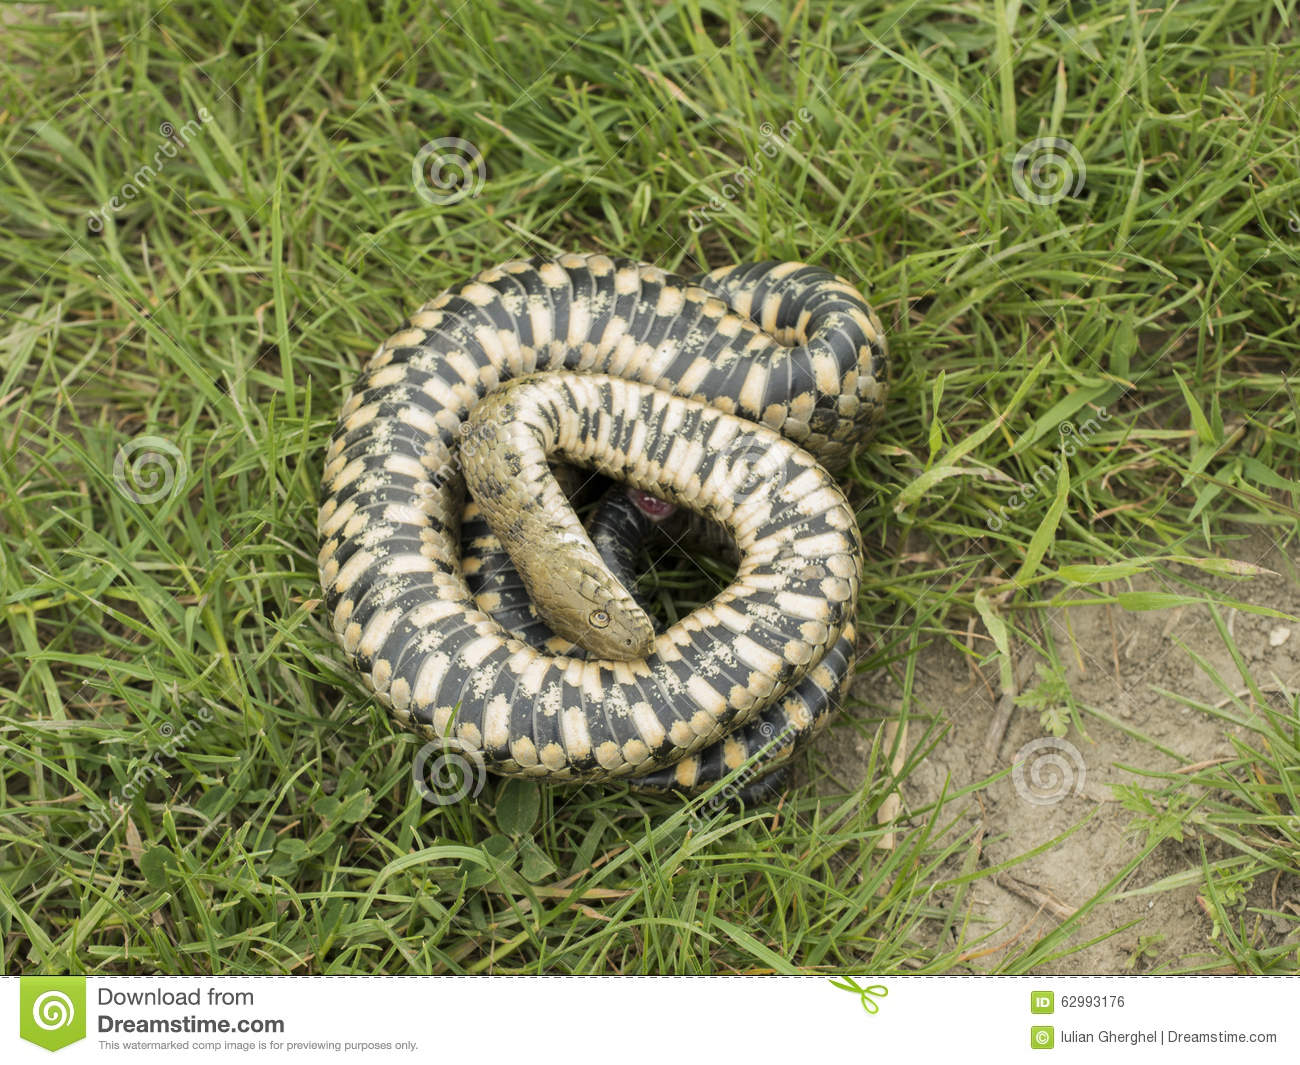 Natrix Tessellata - Dice Snake - Royalty Free Stock Images - Image ...